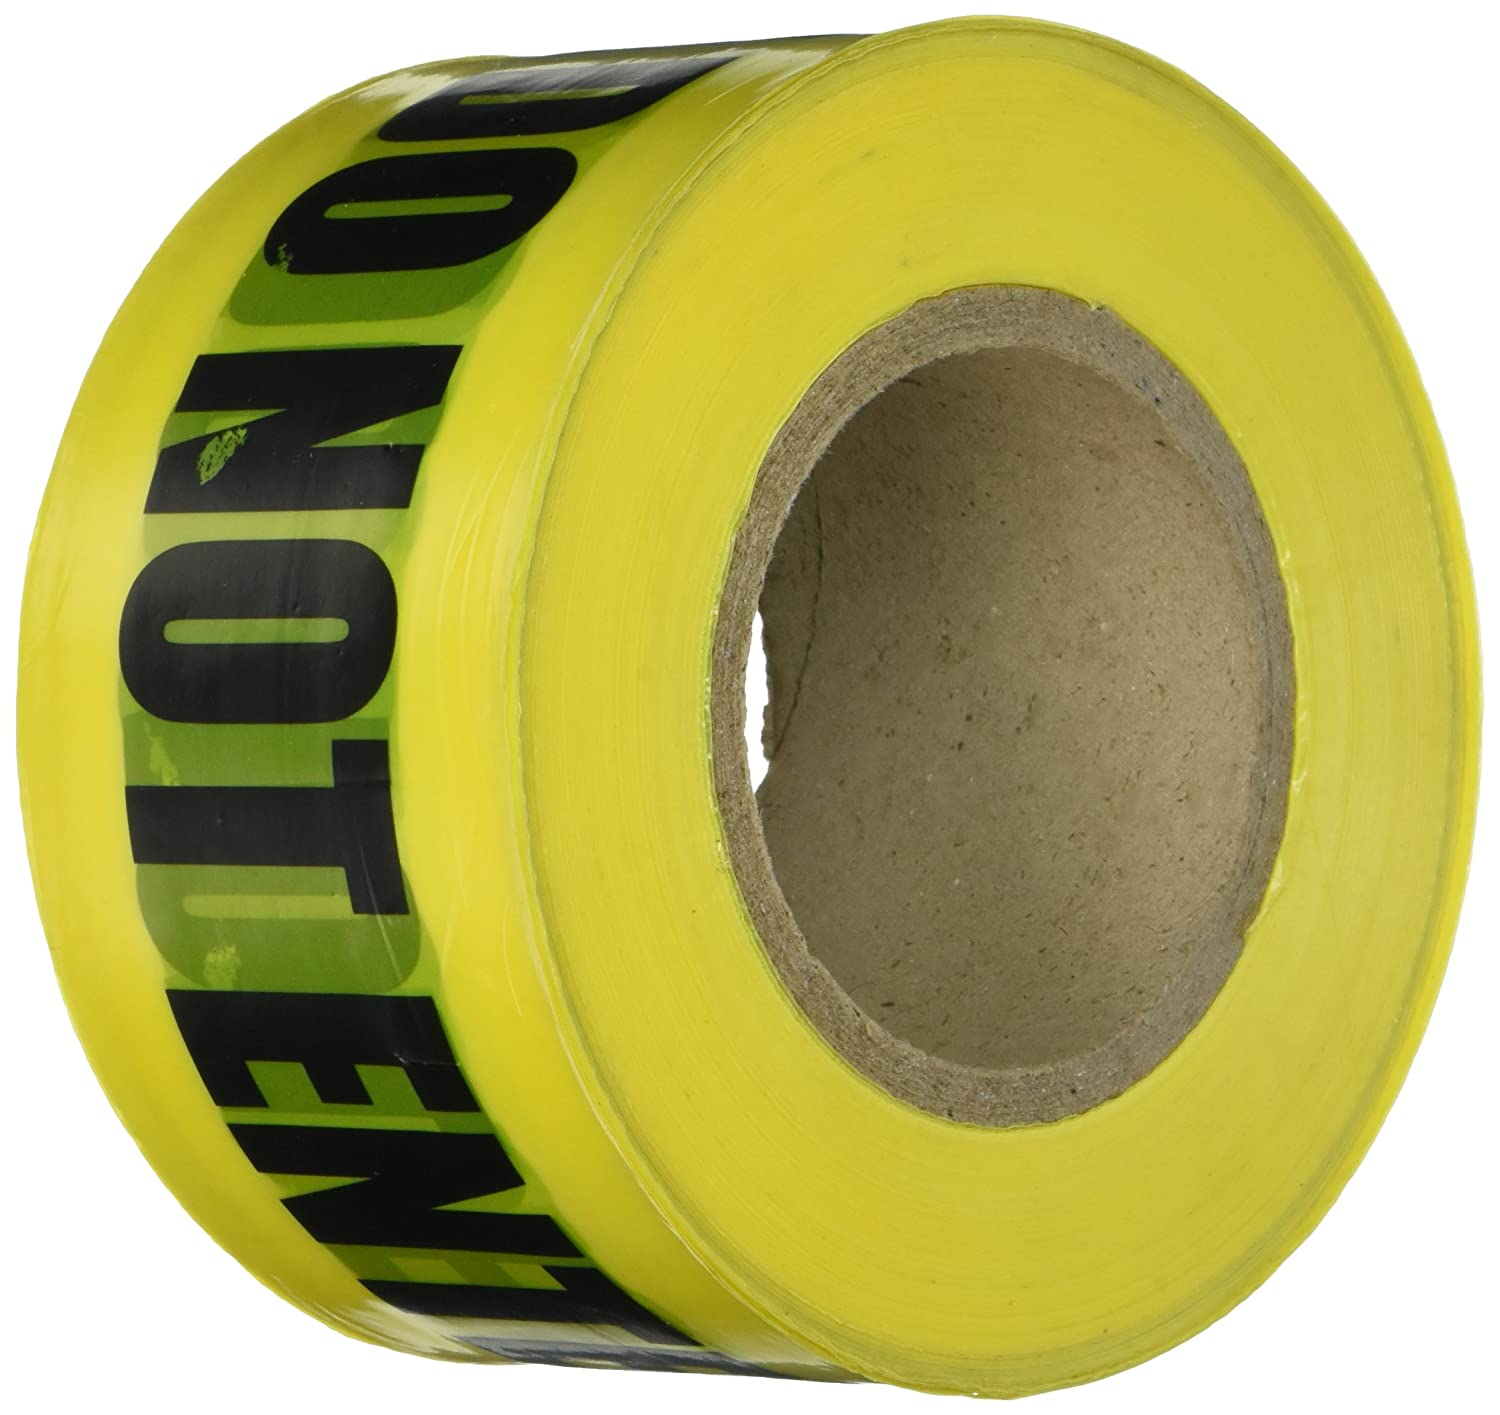 000 Size 3 x 1 2.0 mil Thickness Ideal 42-012 BarrierCaution Do Not Enter Tapes Yellow 3 x 1 000/' Size Fotronic Corporation